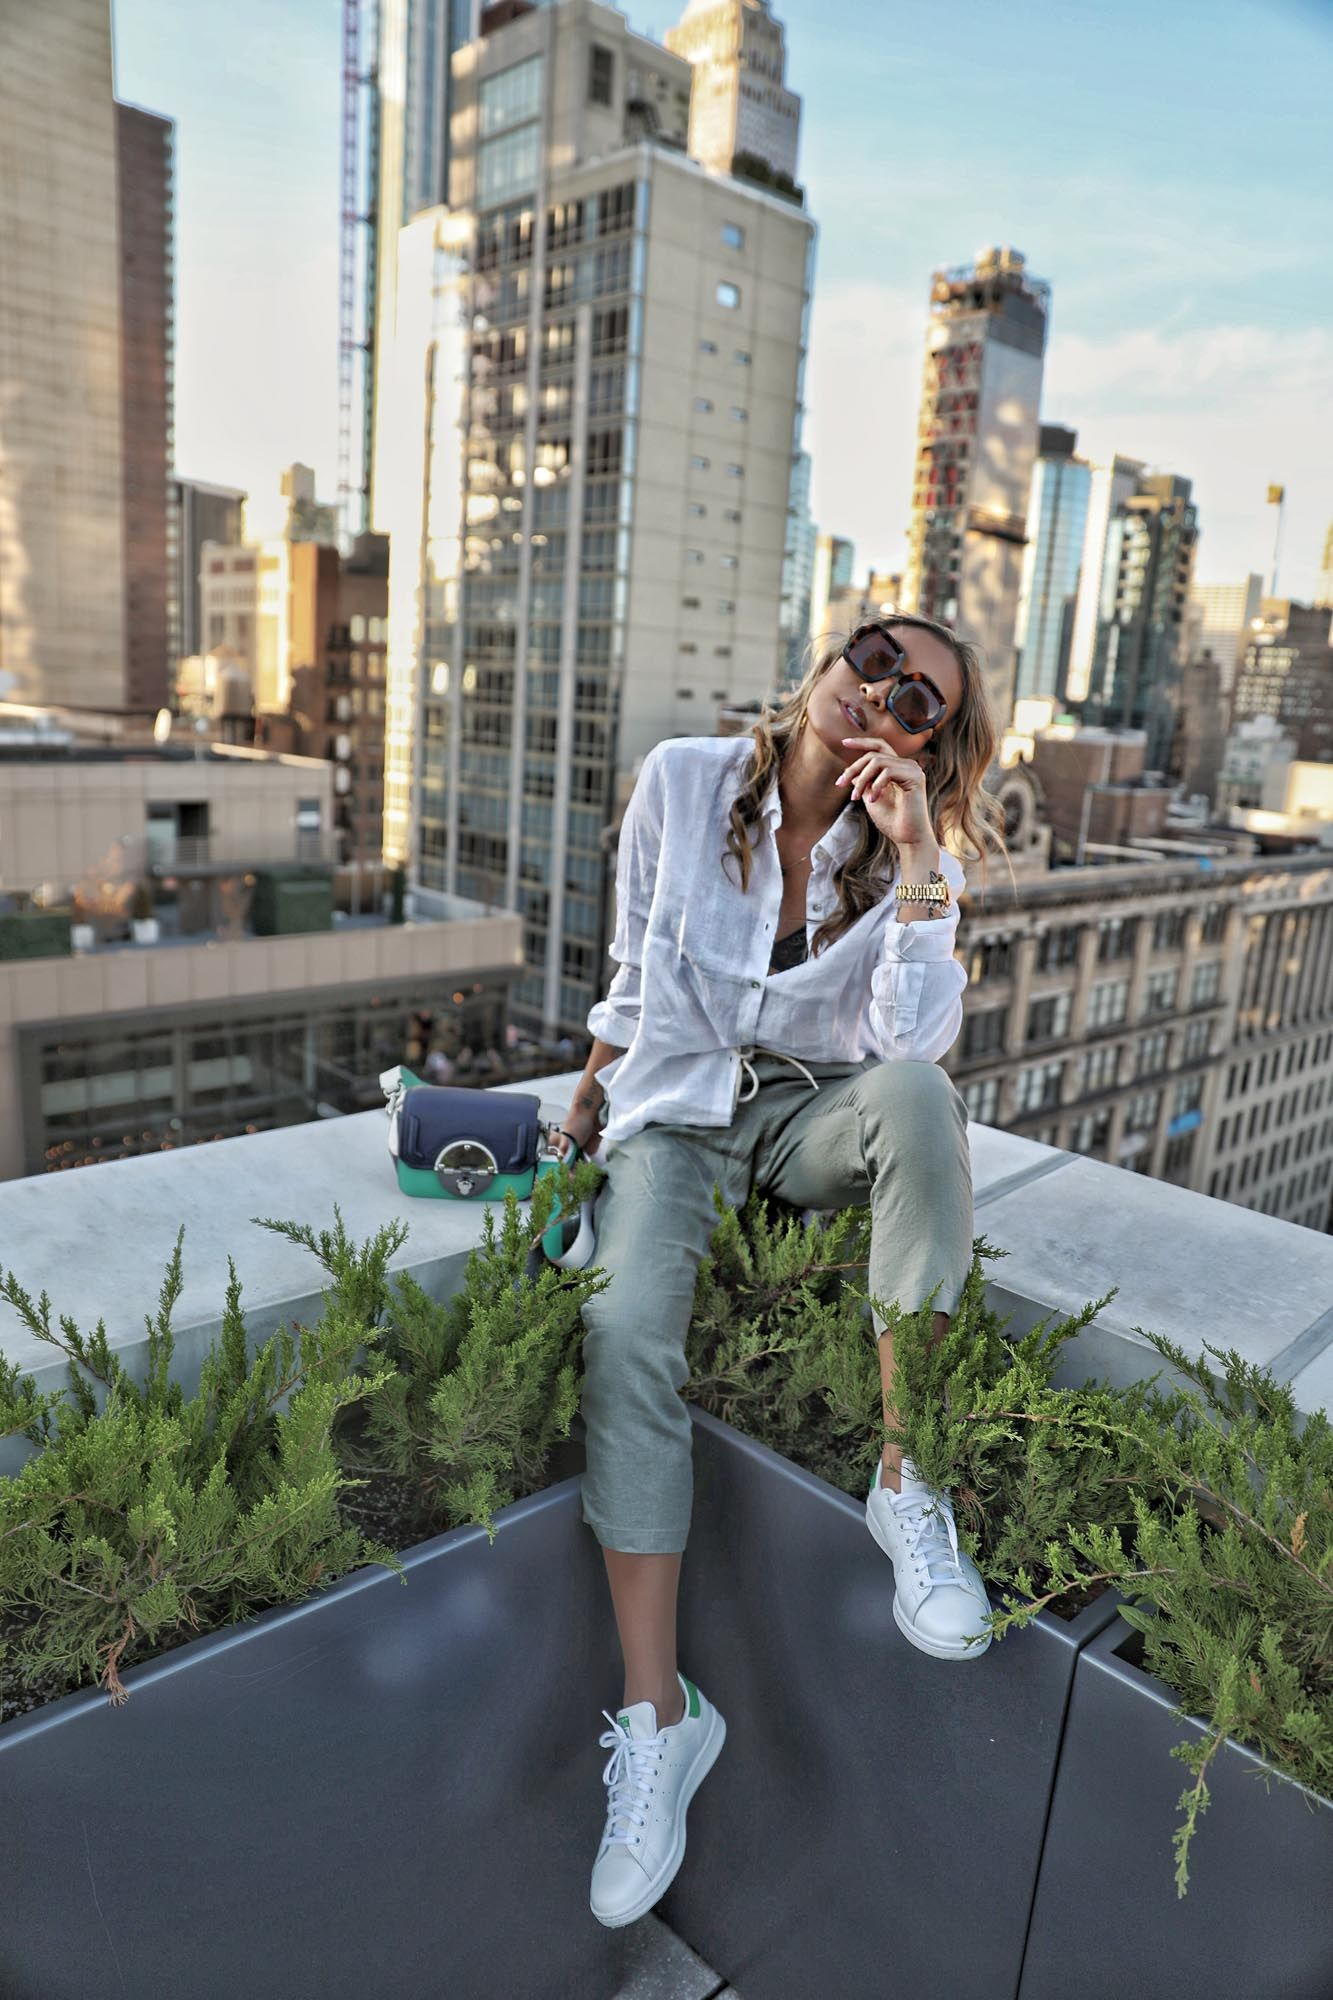 NYC Rooftop Photoshoot